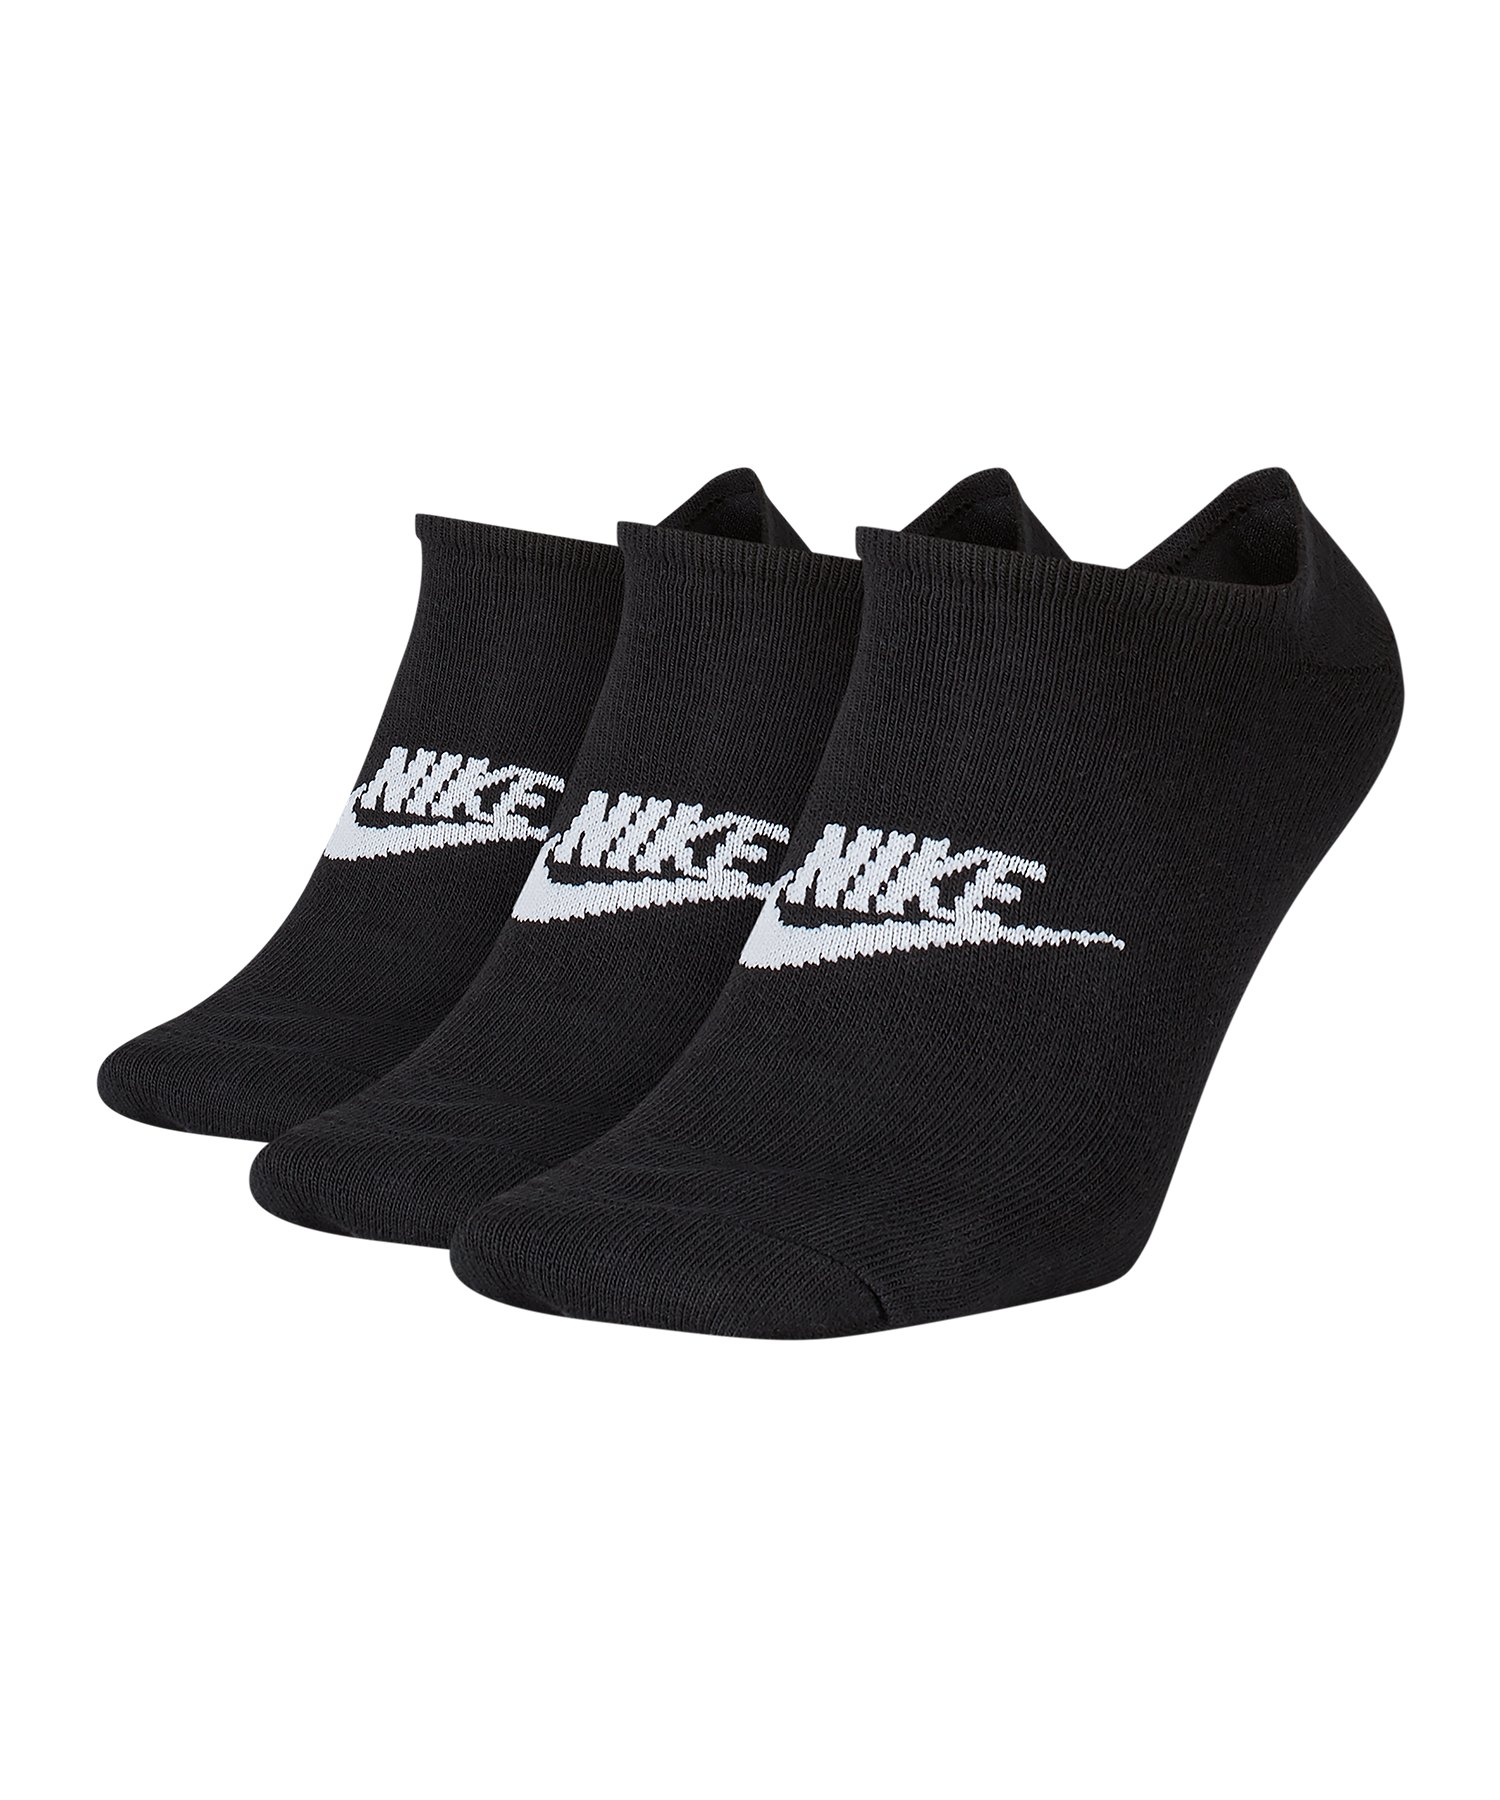 Nike Everyday Essential Füsslinge 3er Pack F010 - schwarz